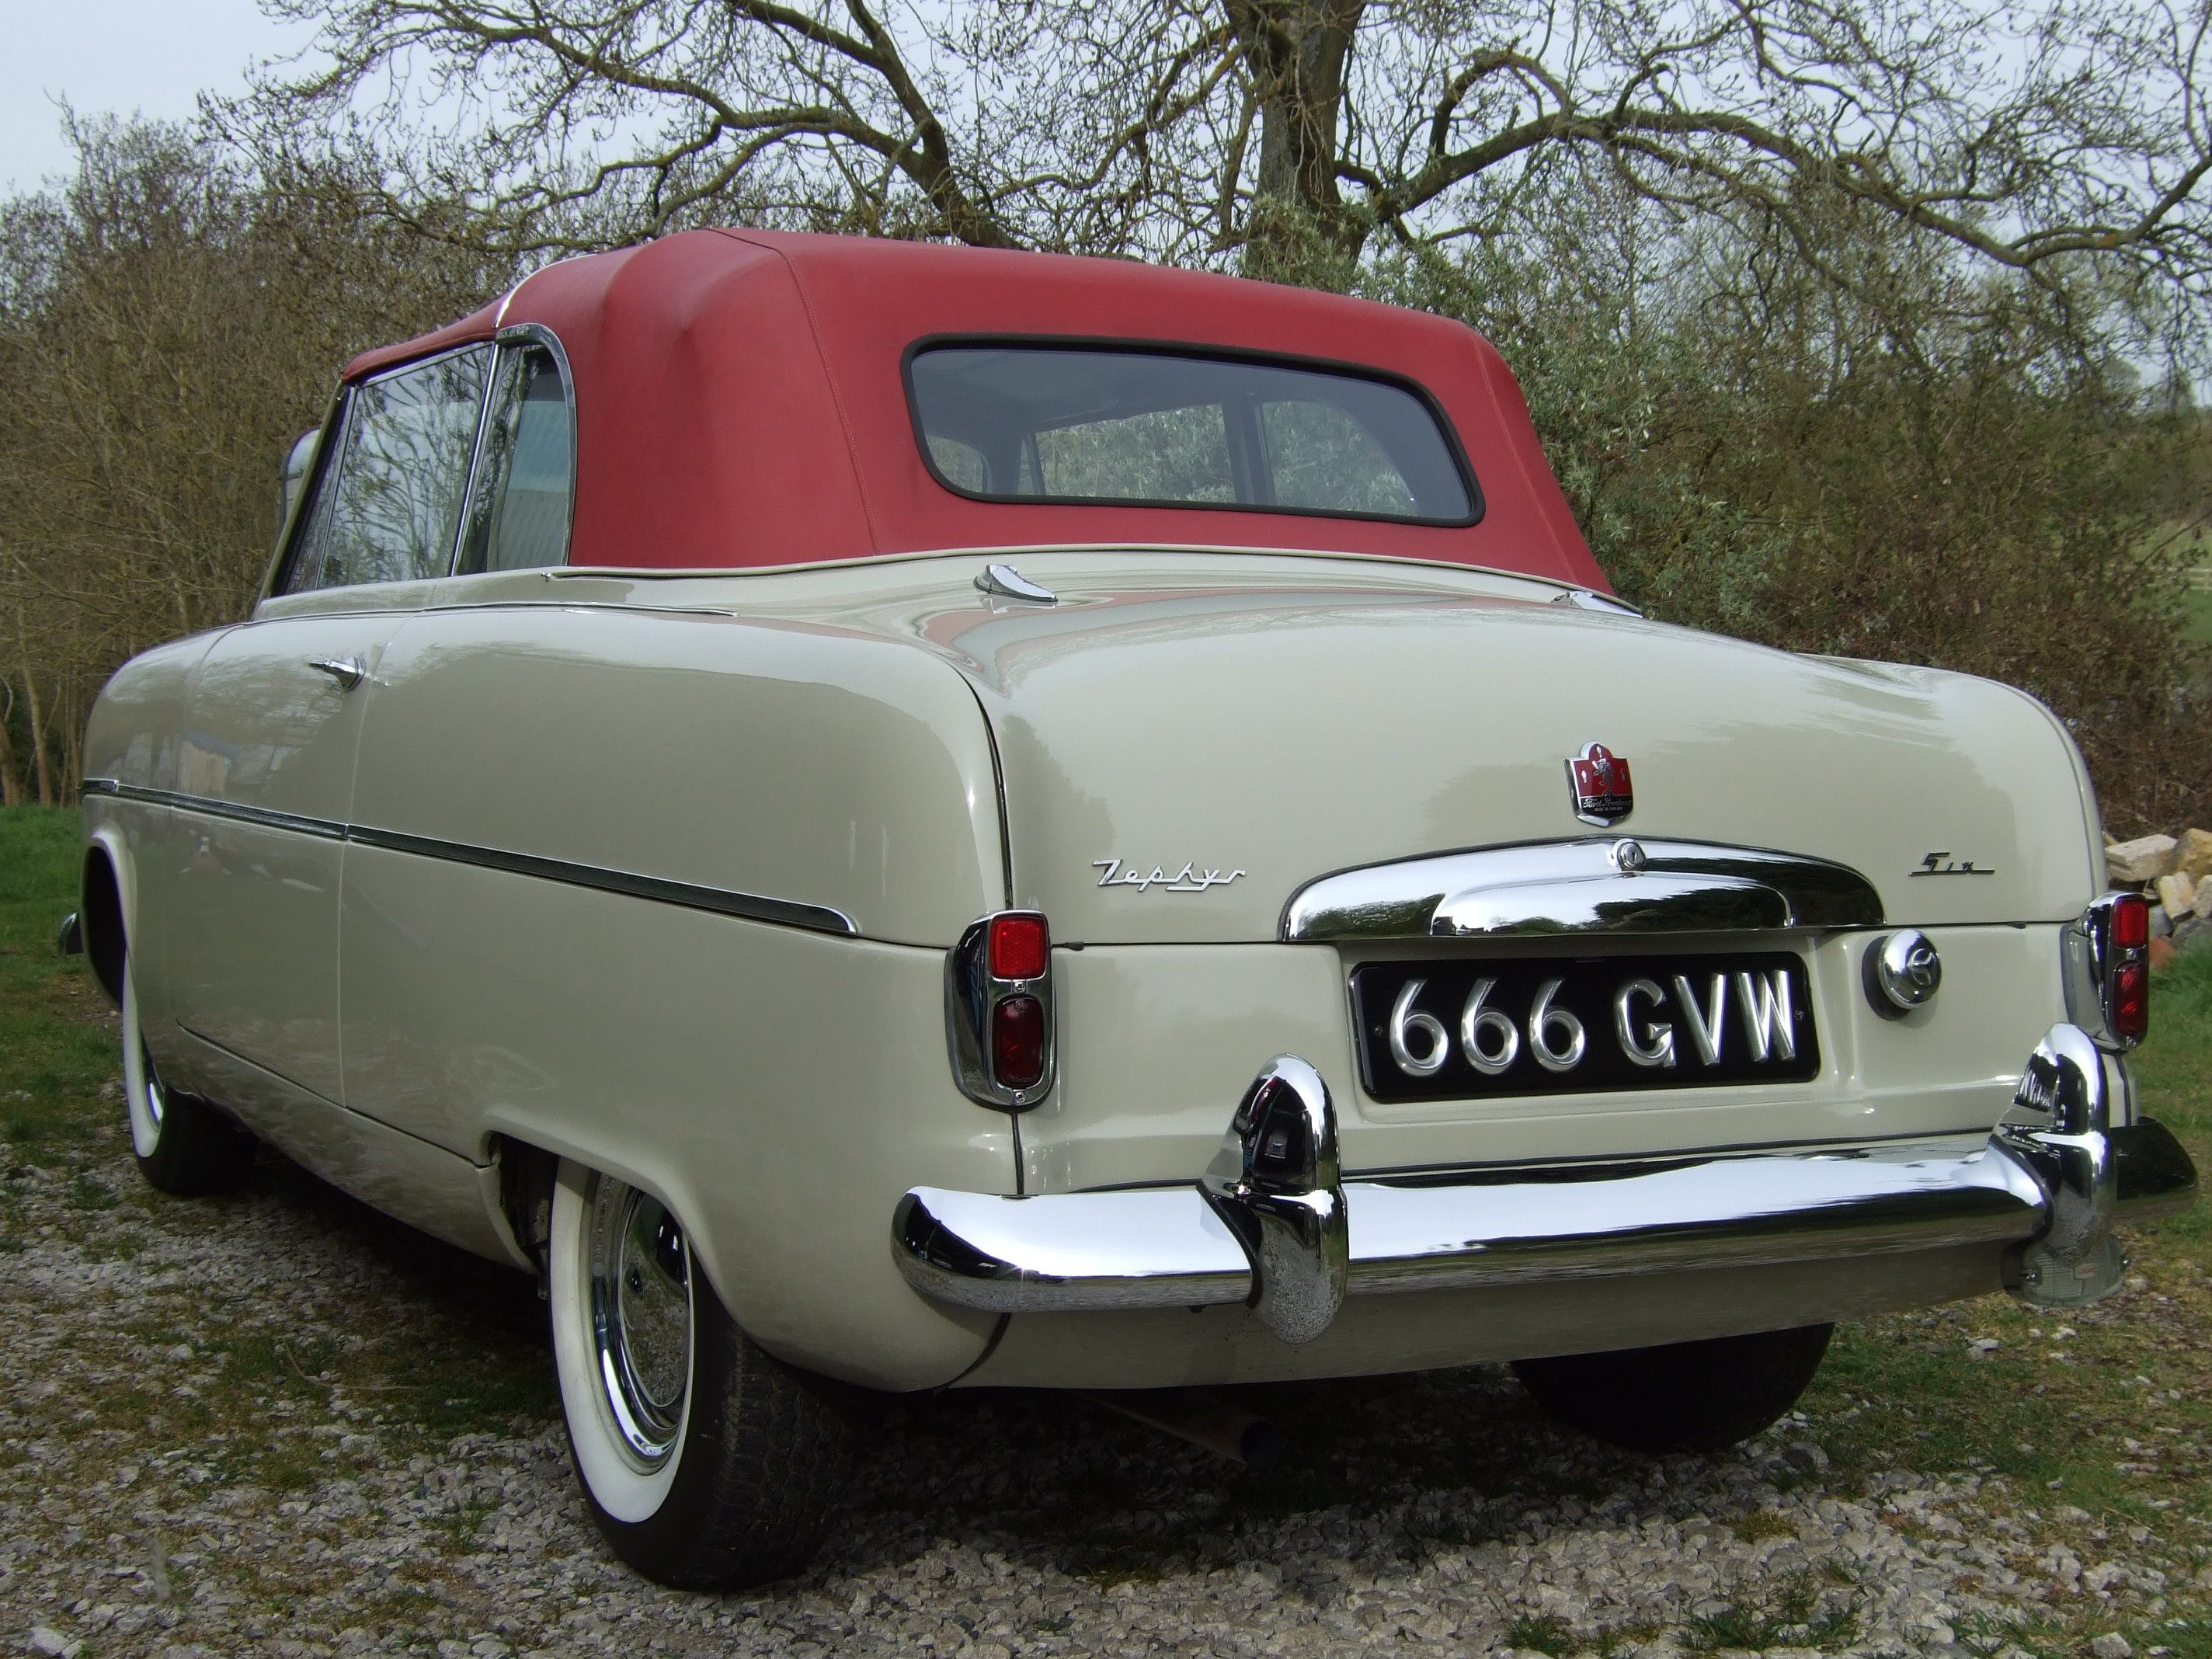 Mk1 Zephyr Convertible 1954 Ford Zephyr 1954 Ford Ford